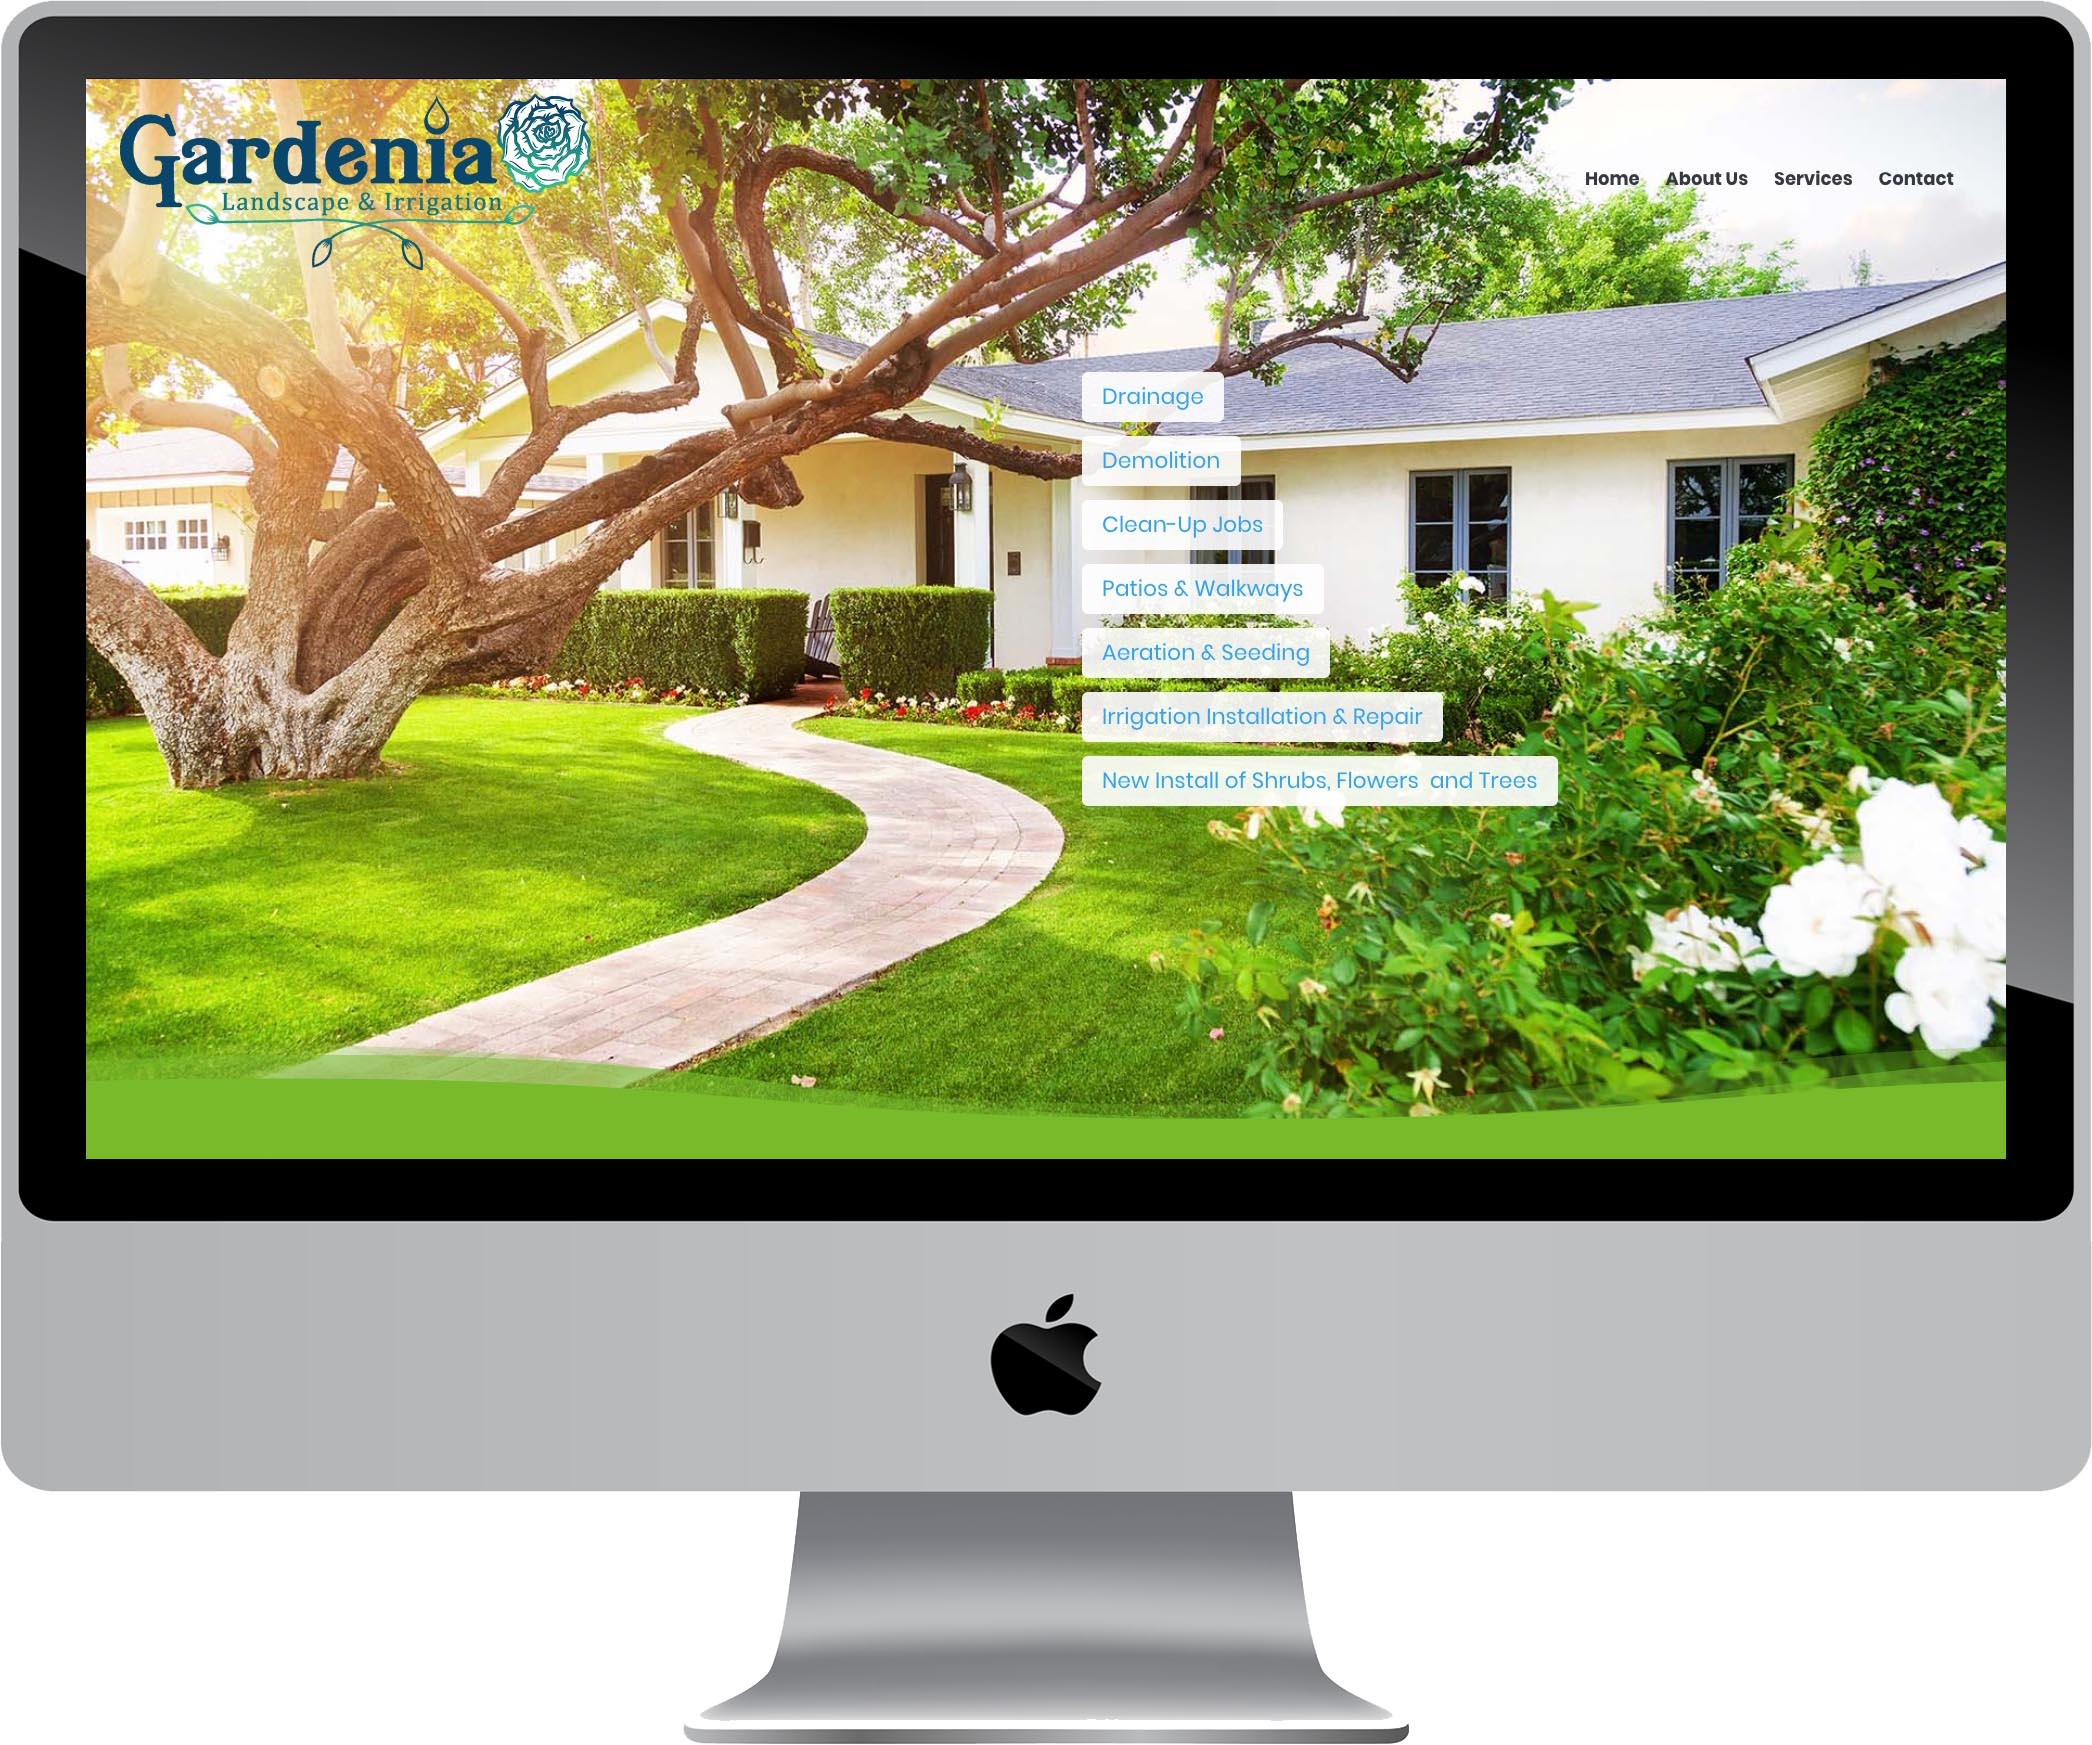 Gardenia Landscape & Irrigation Website Design